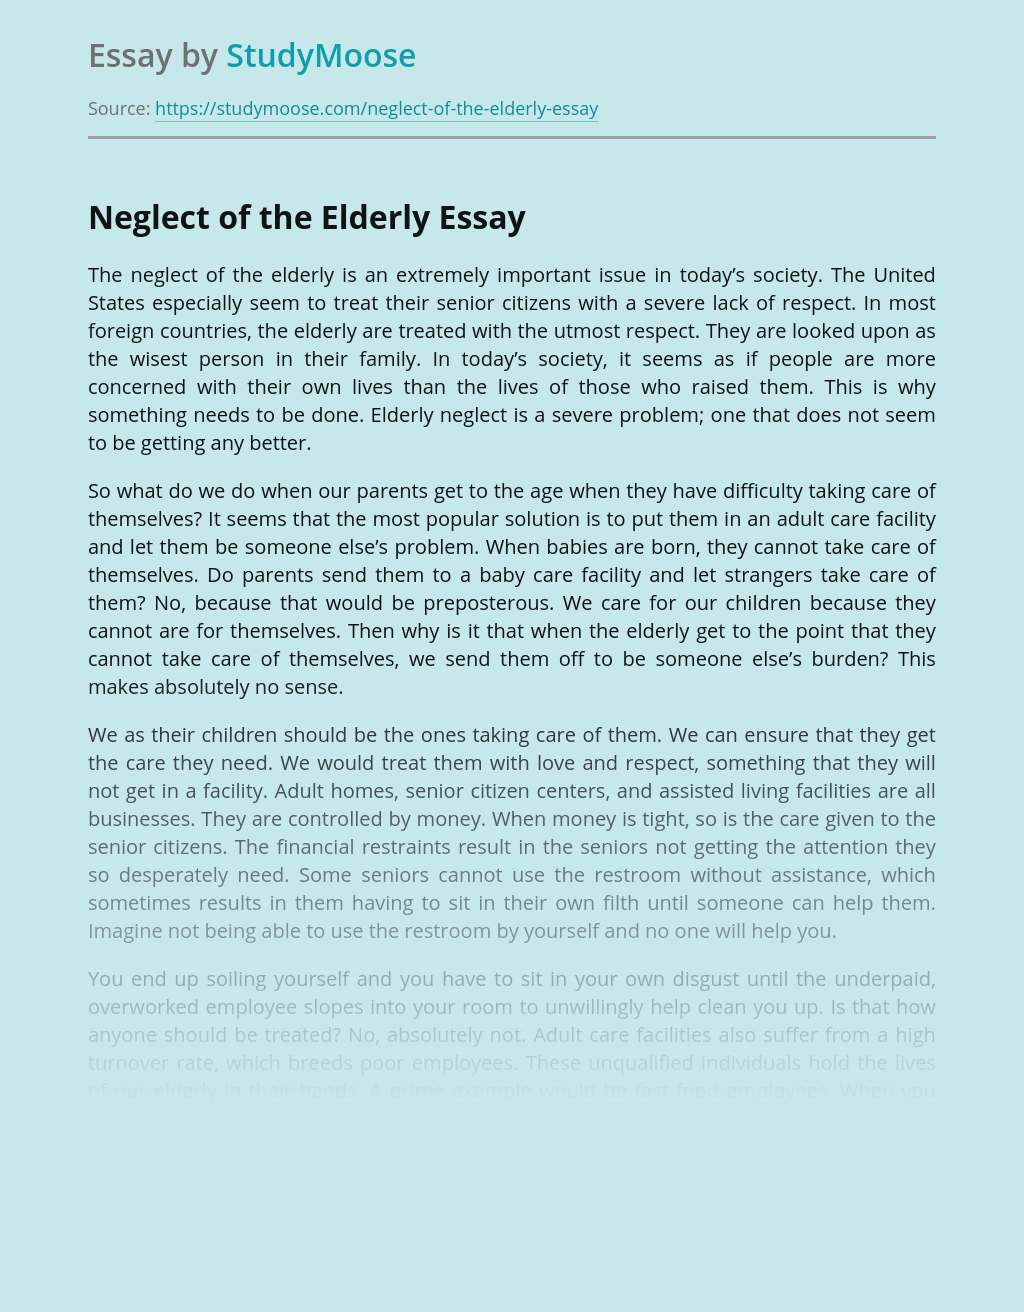 Neglect of the Elderly